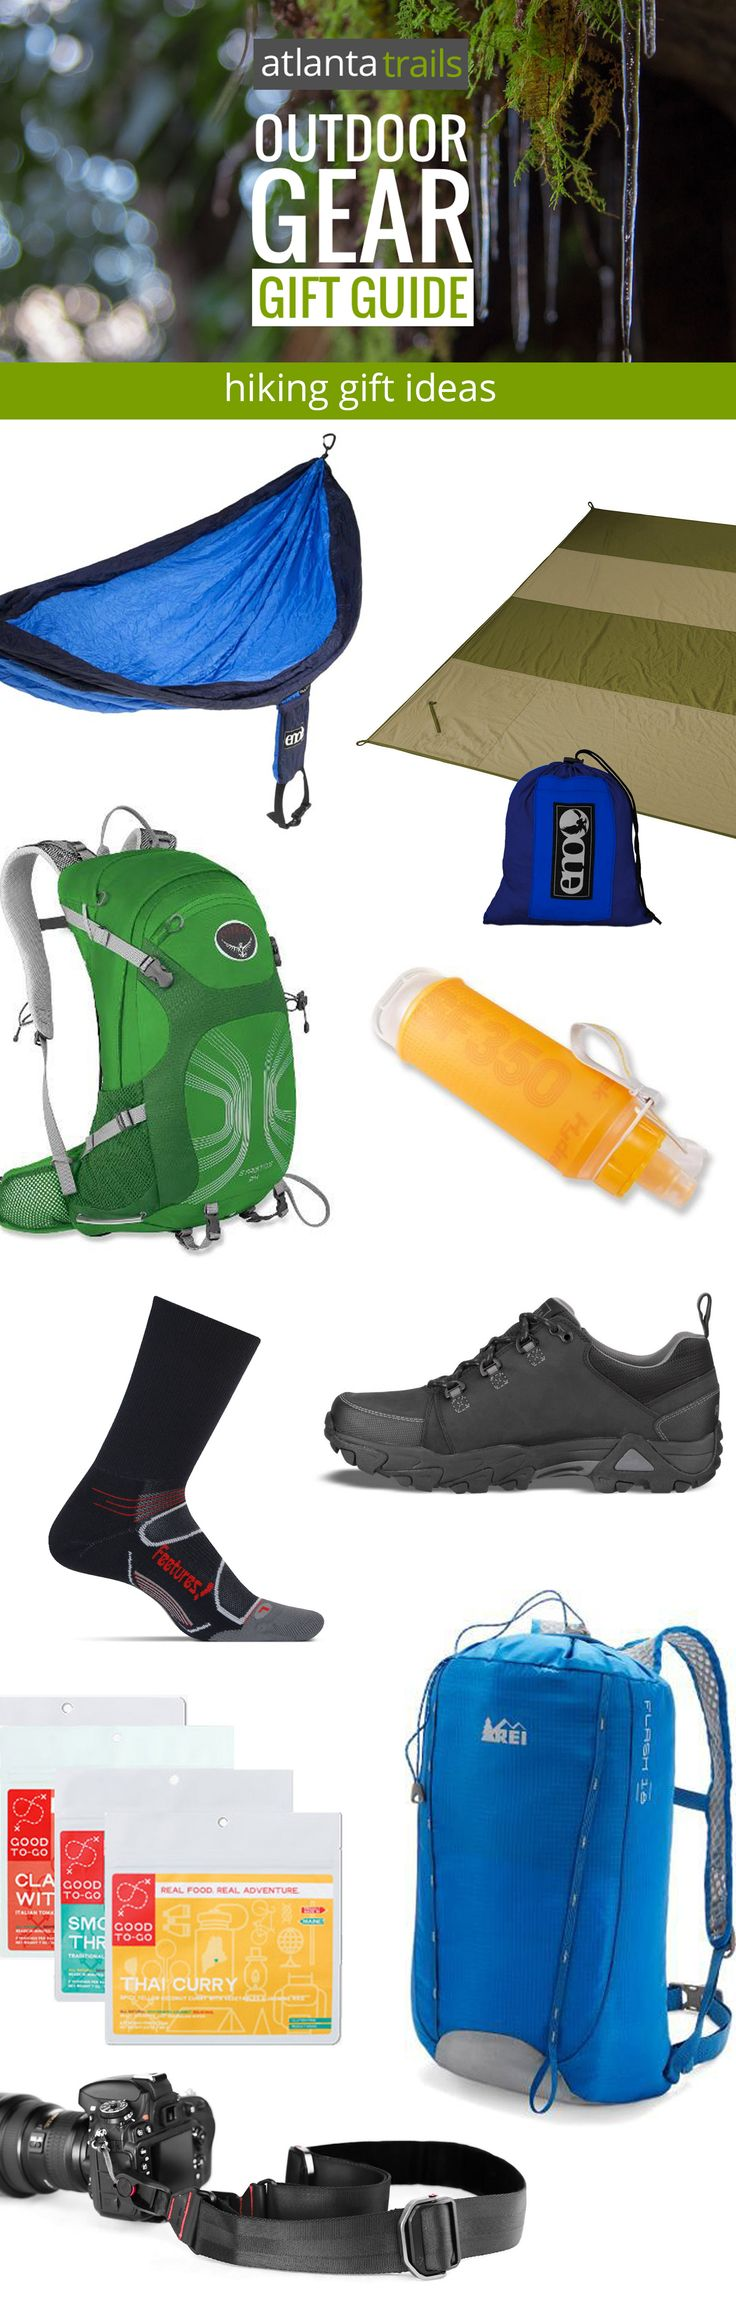 Looking for gift ideas for a hiker on your list? Our hiking gift guide features our trail-tested favorite hiking gear, and the hiking gifts that top our own lists this year.